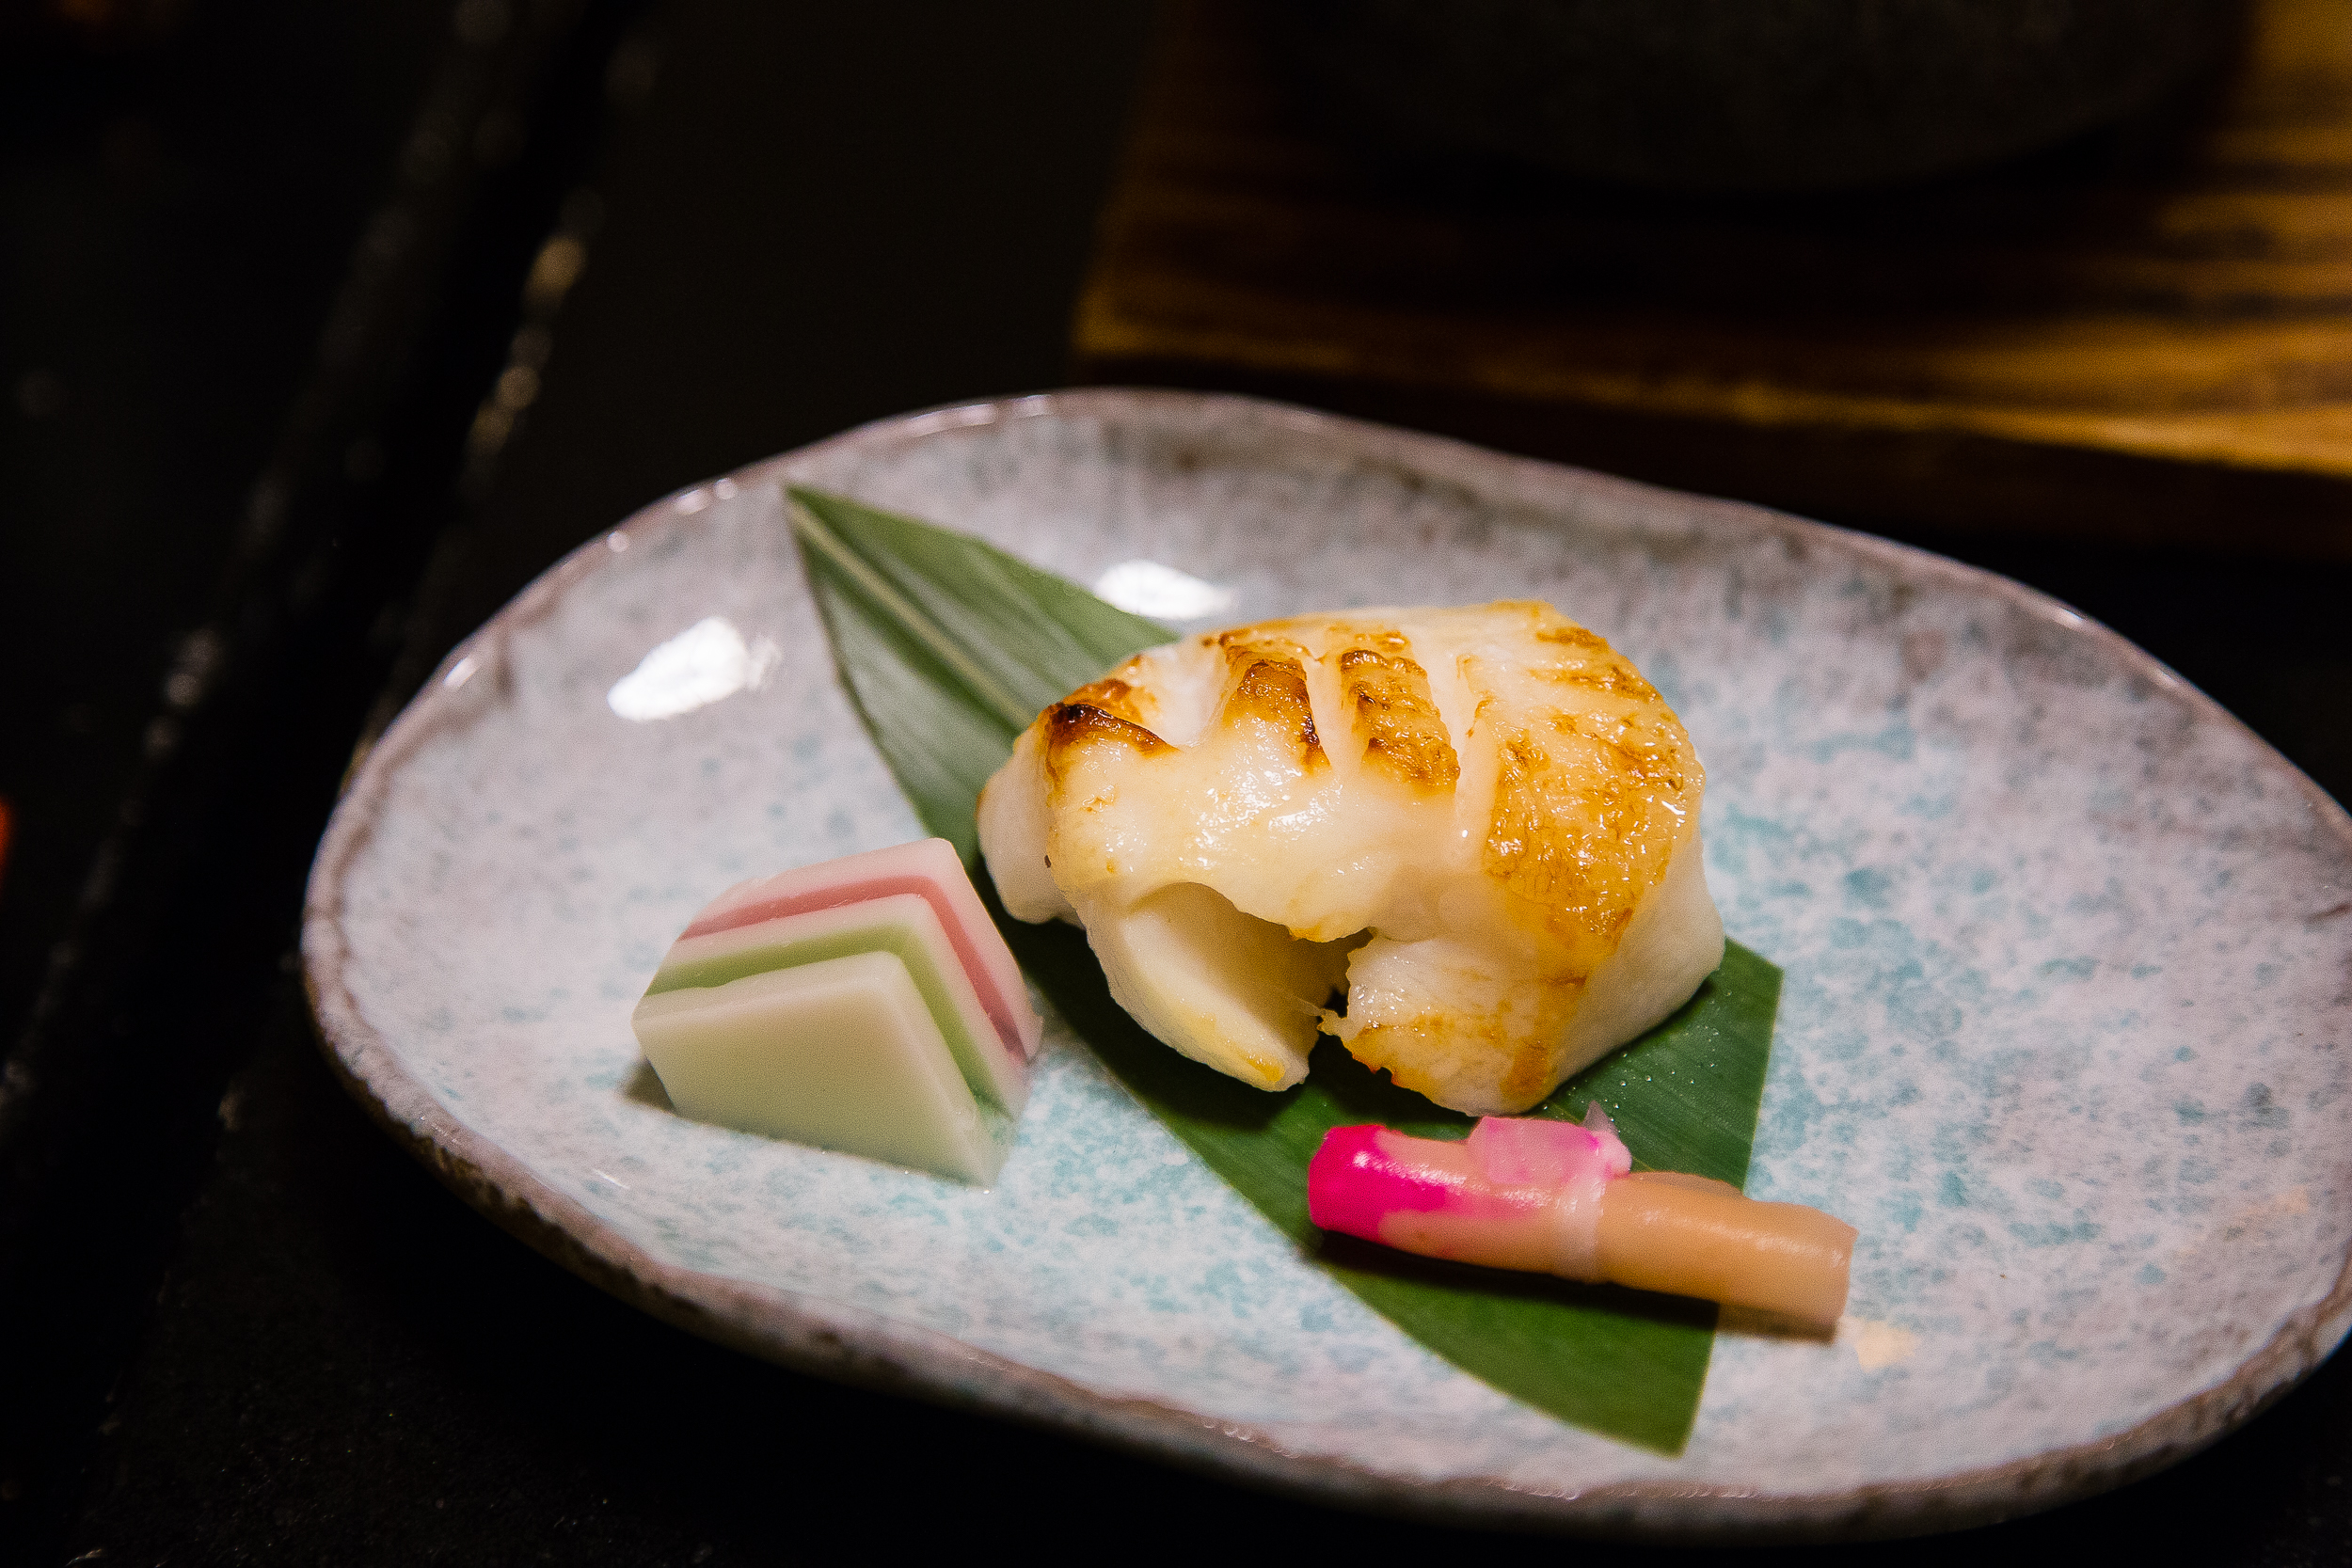 Unidentifiable fish with unidentifiable jelly substance and pickled ginger shoot